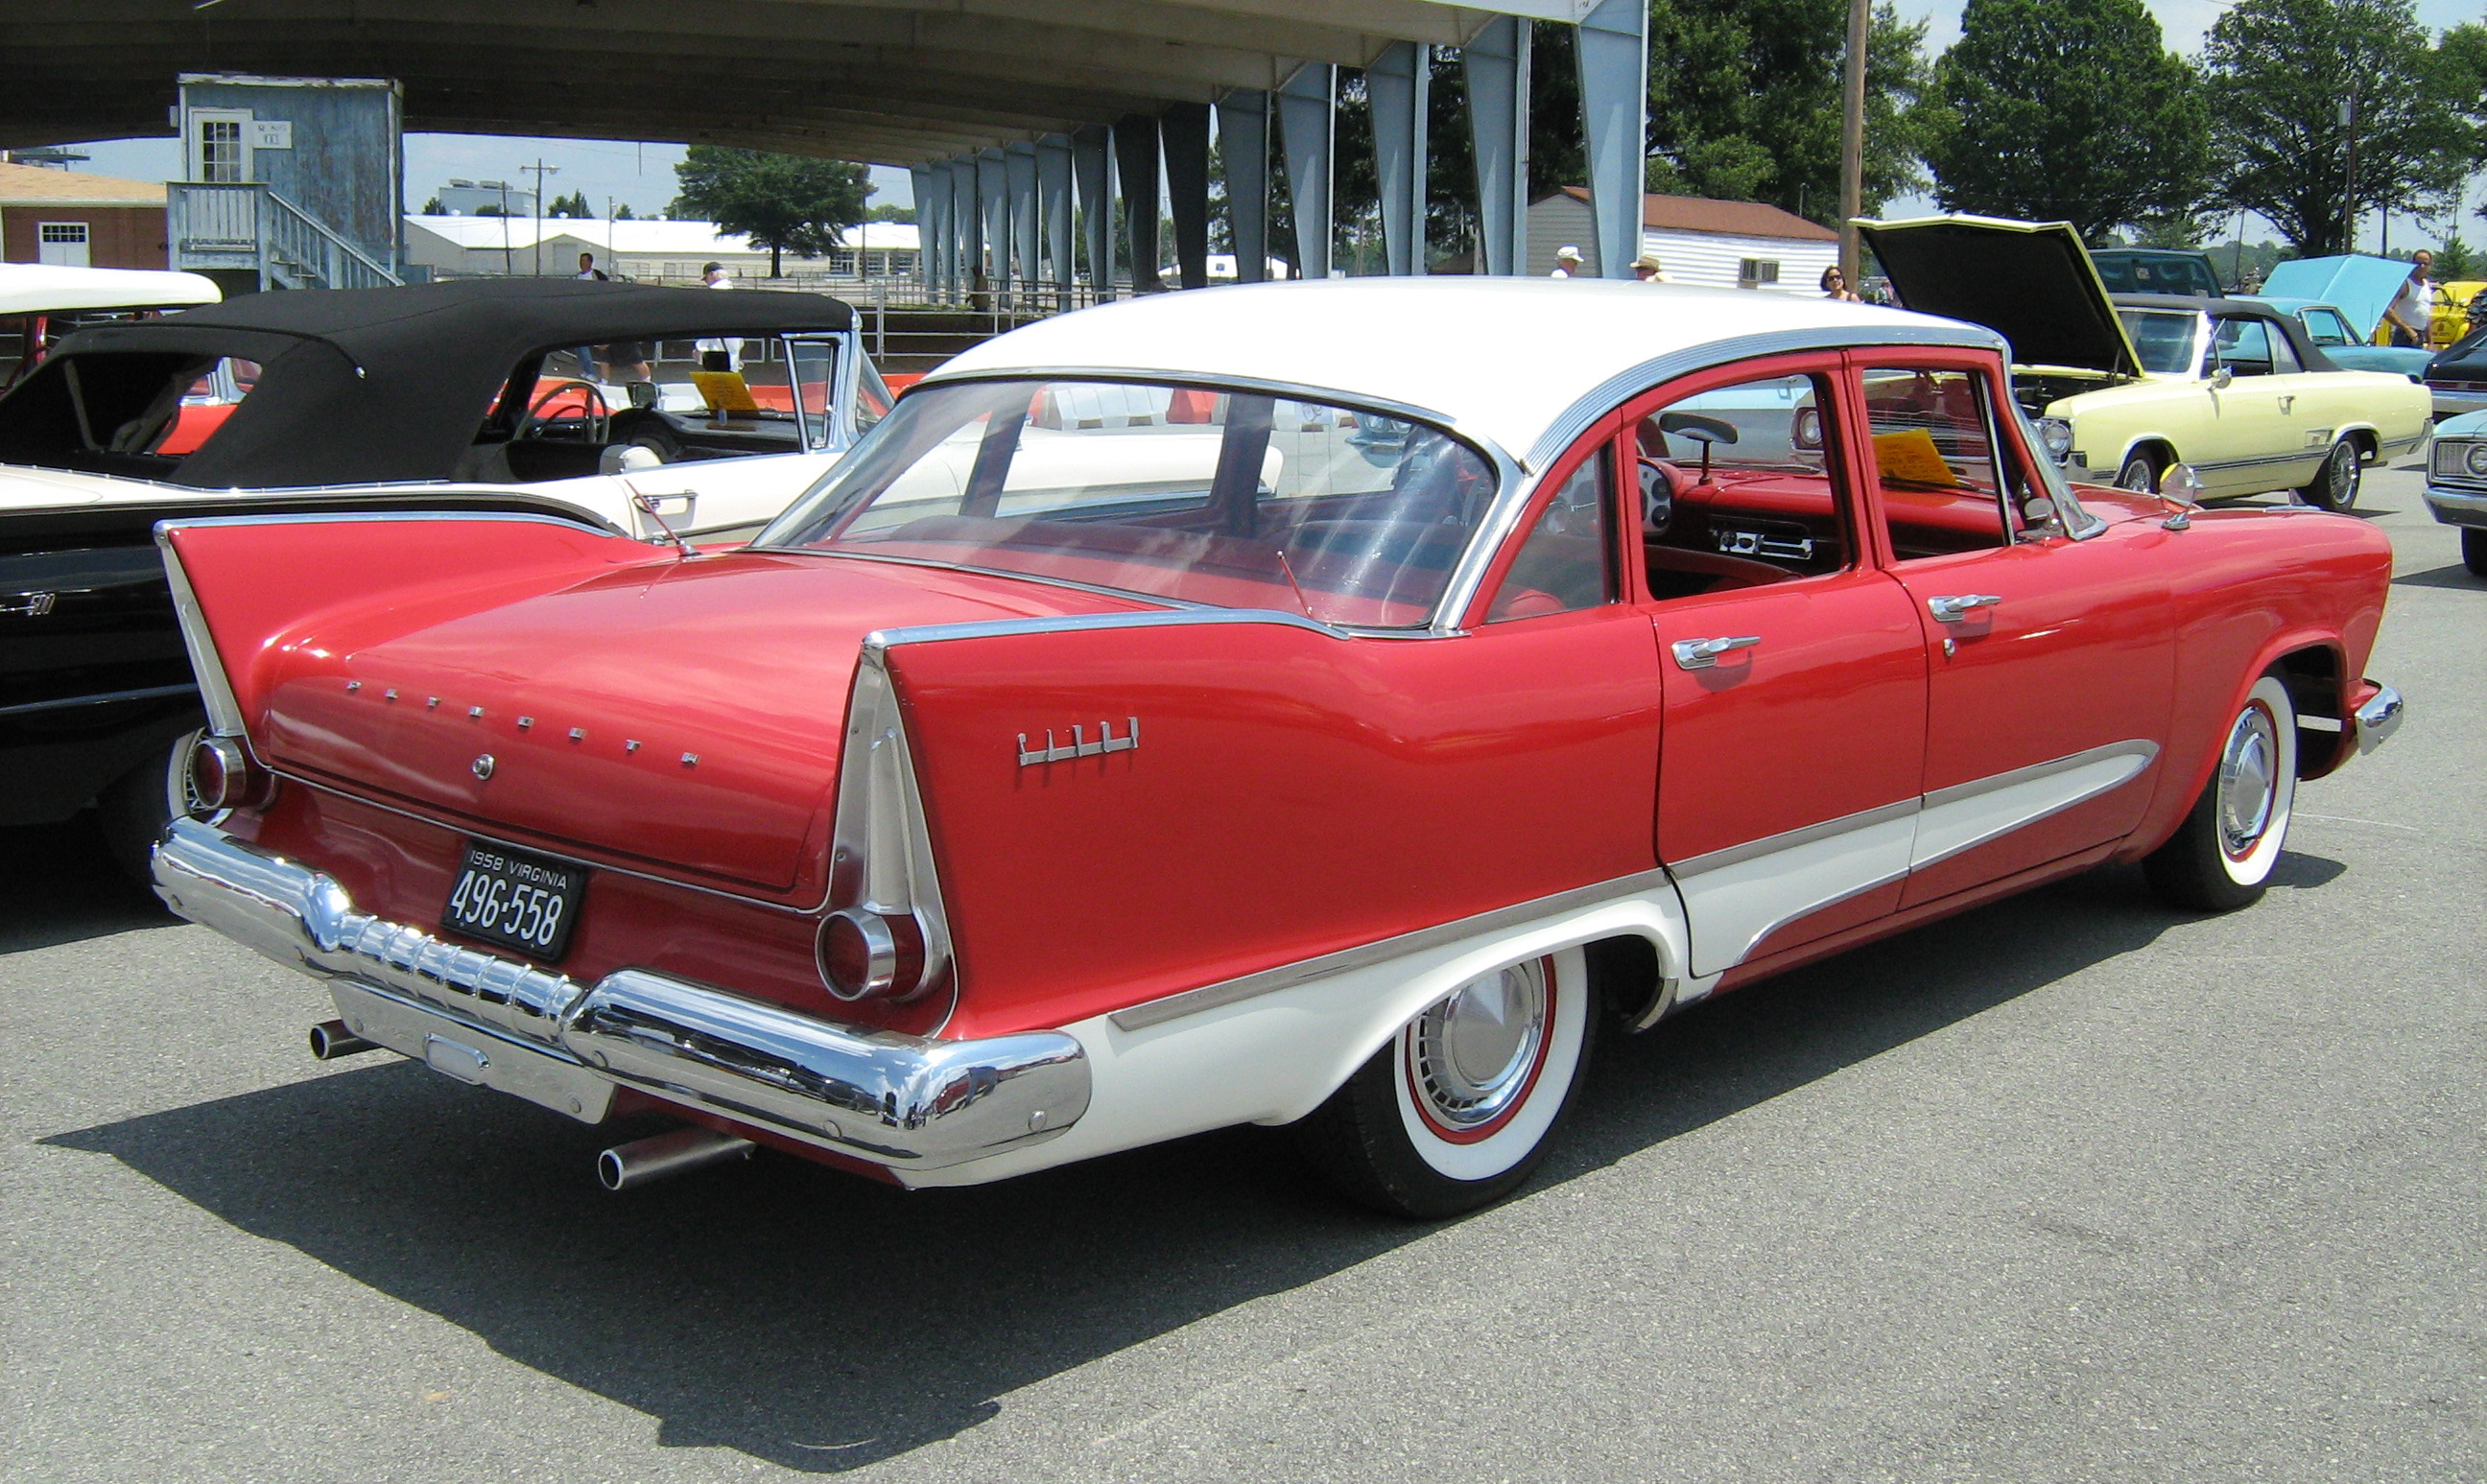 1958 Or 1957 Plymouth Fury Or Belvedere For Sale Autos Post